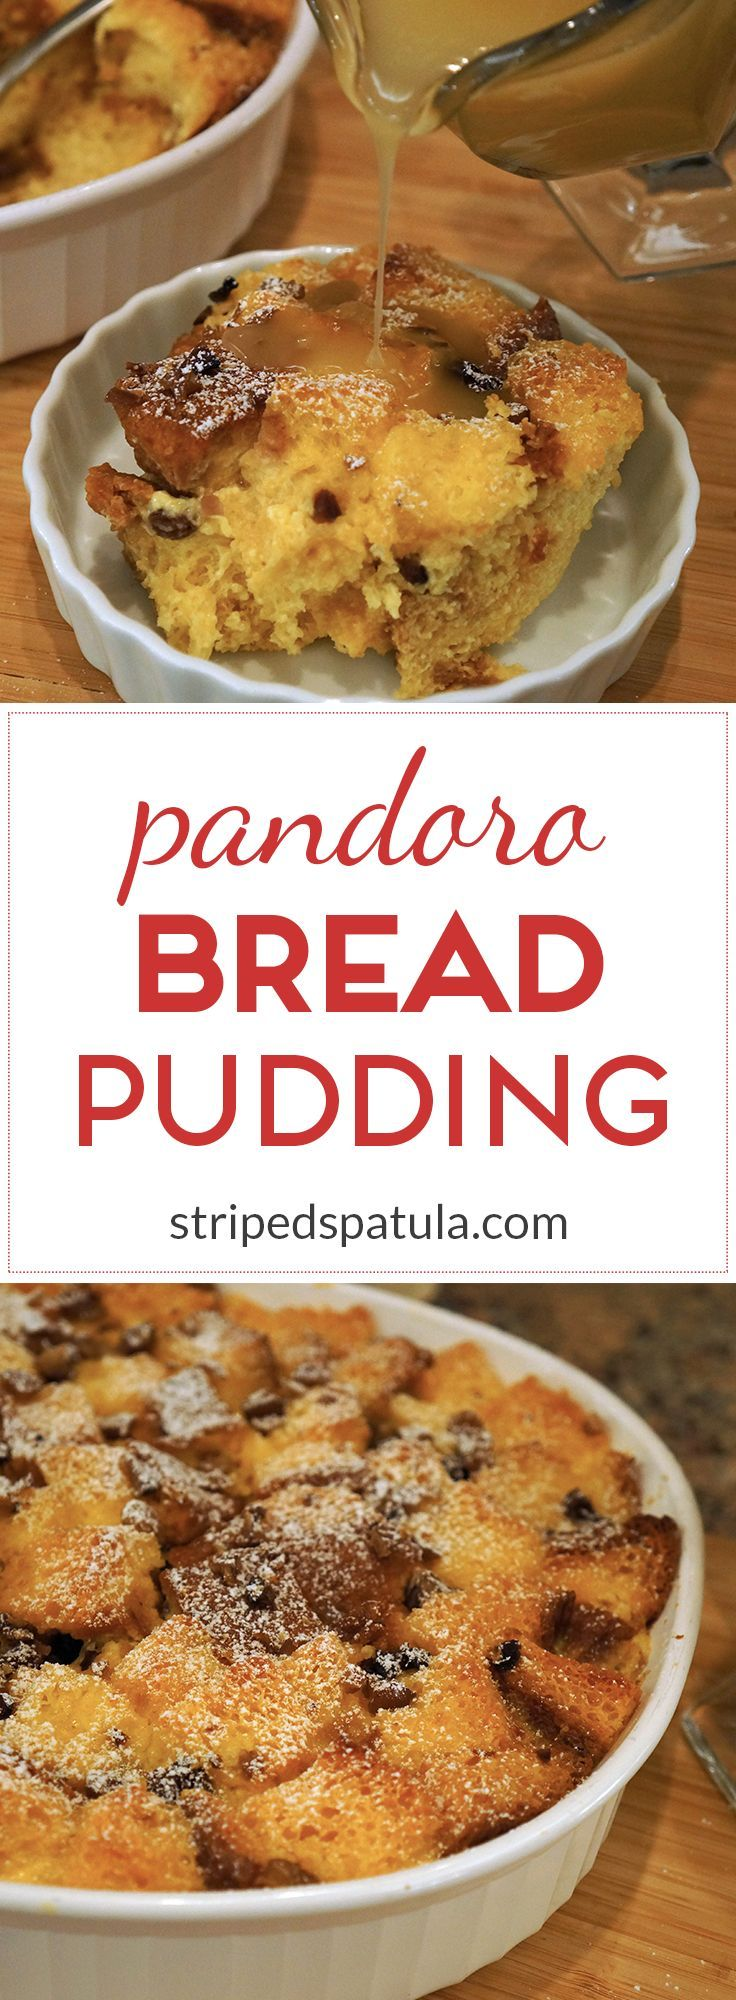 Pandoro Bread Pudding with Warm Bourbon Sauce | Recipe ...